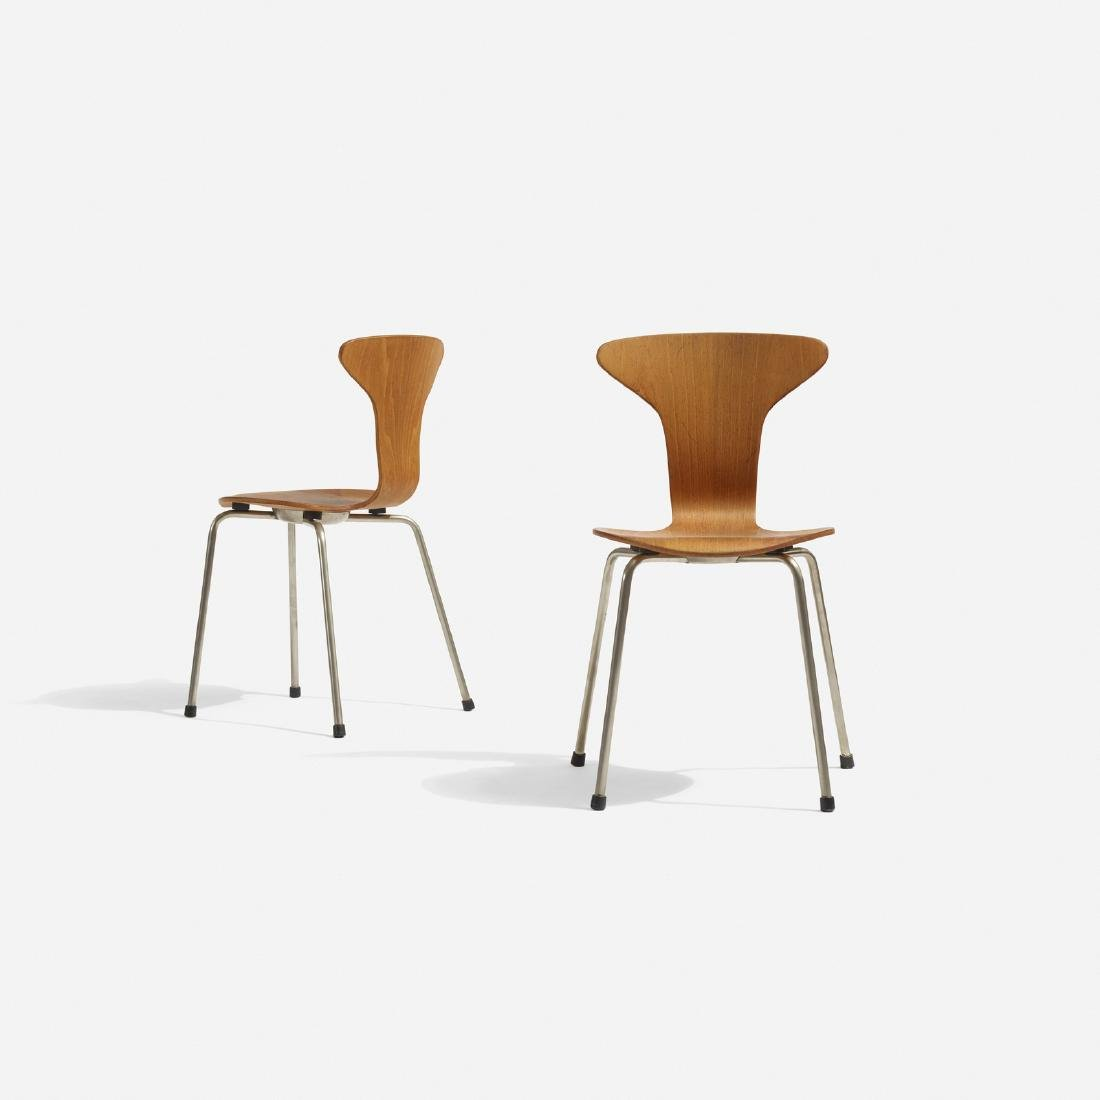 Arne Jacobsen, pair of child's chairs, Munkegaard